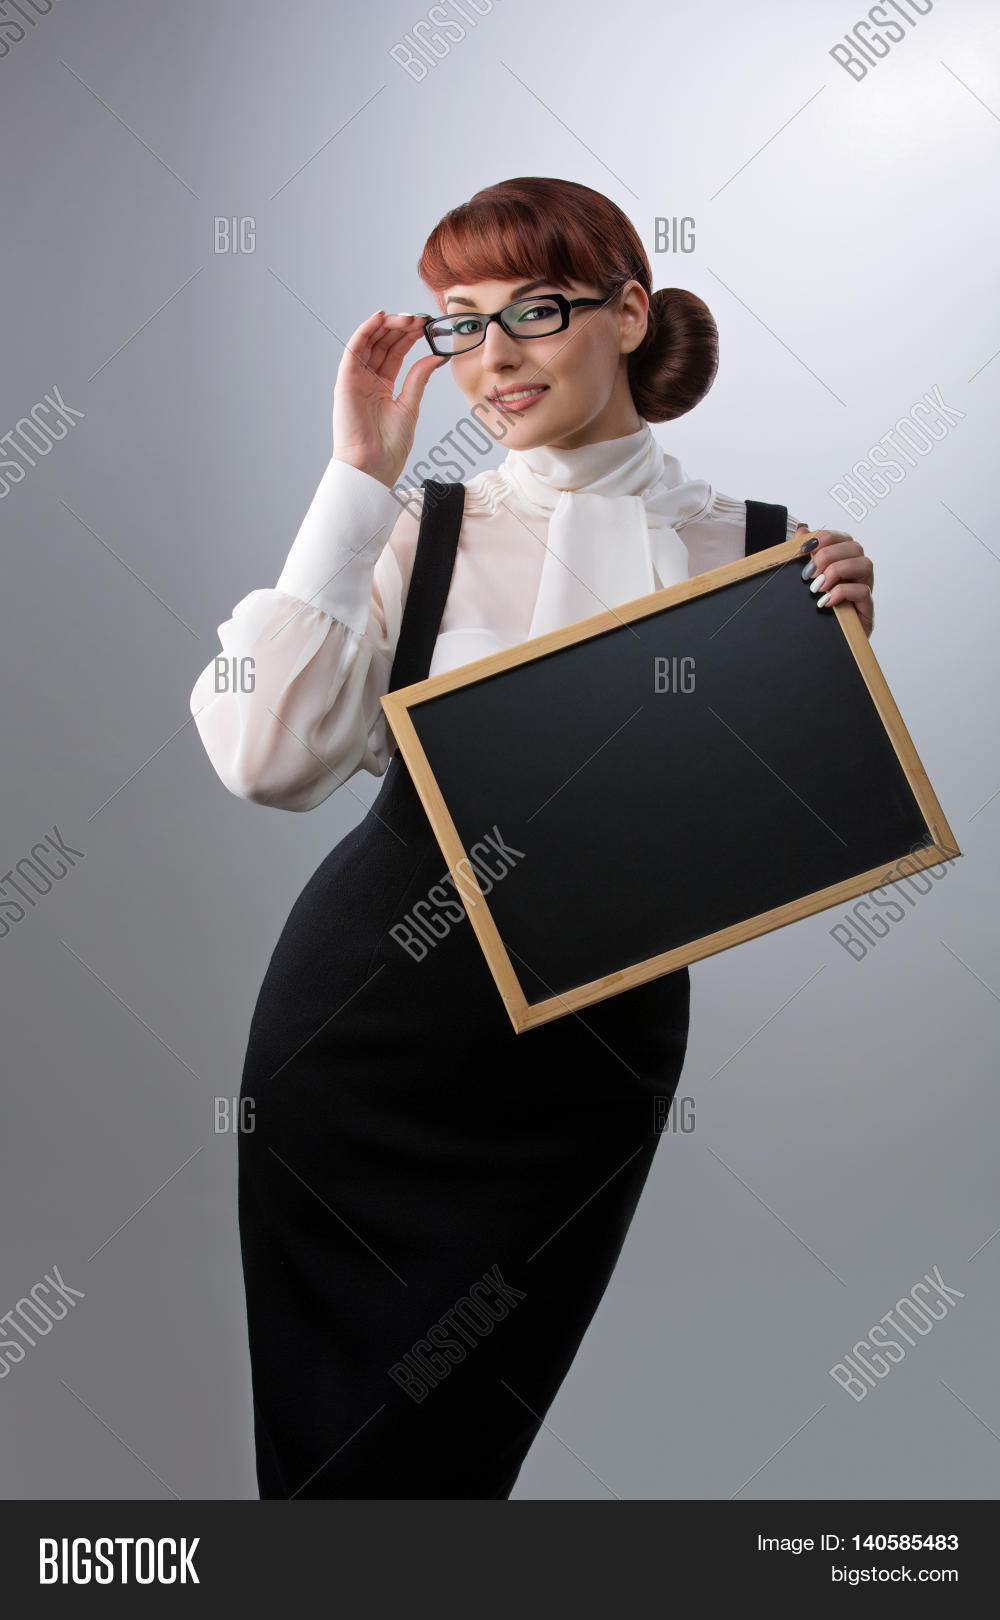 924d6da7d6d2b9 Beautiful young woman in glasses with small blackboard. Teacher wearing  blouse and skirt. Copy